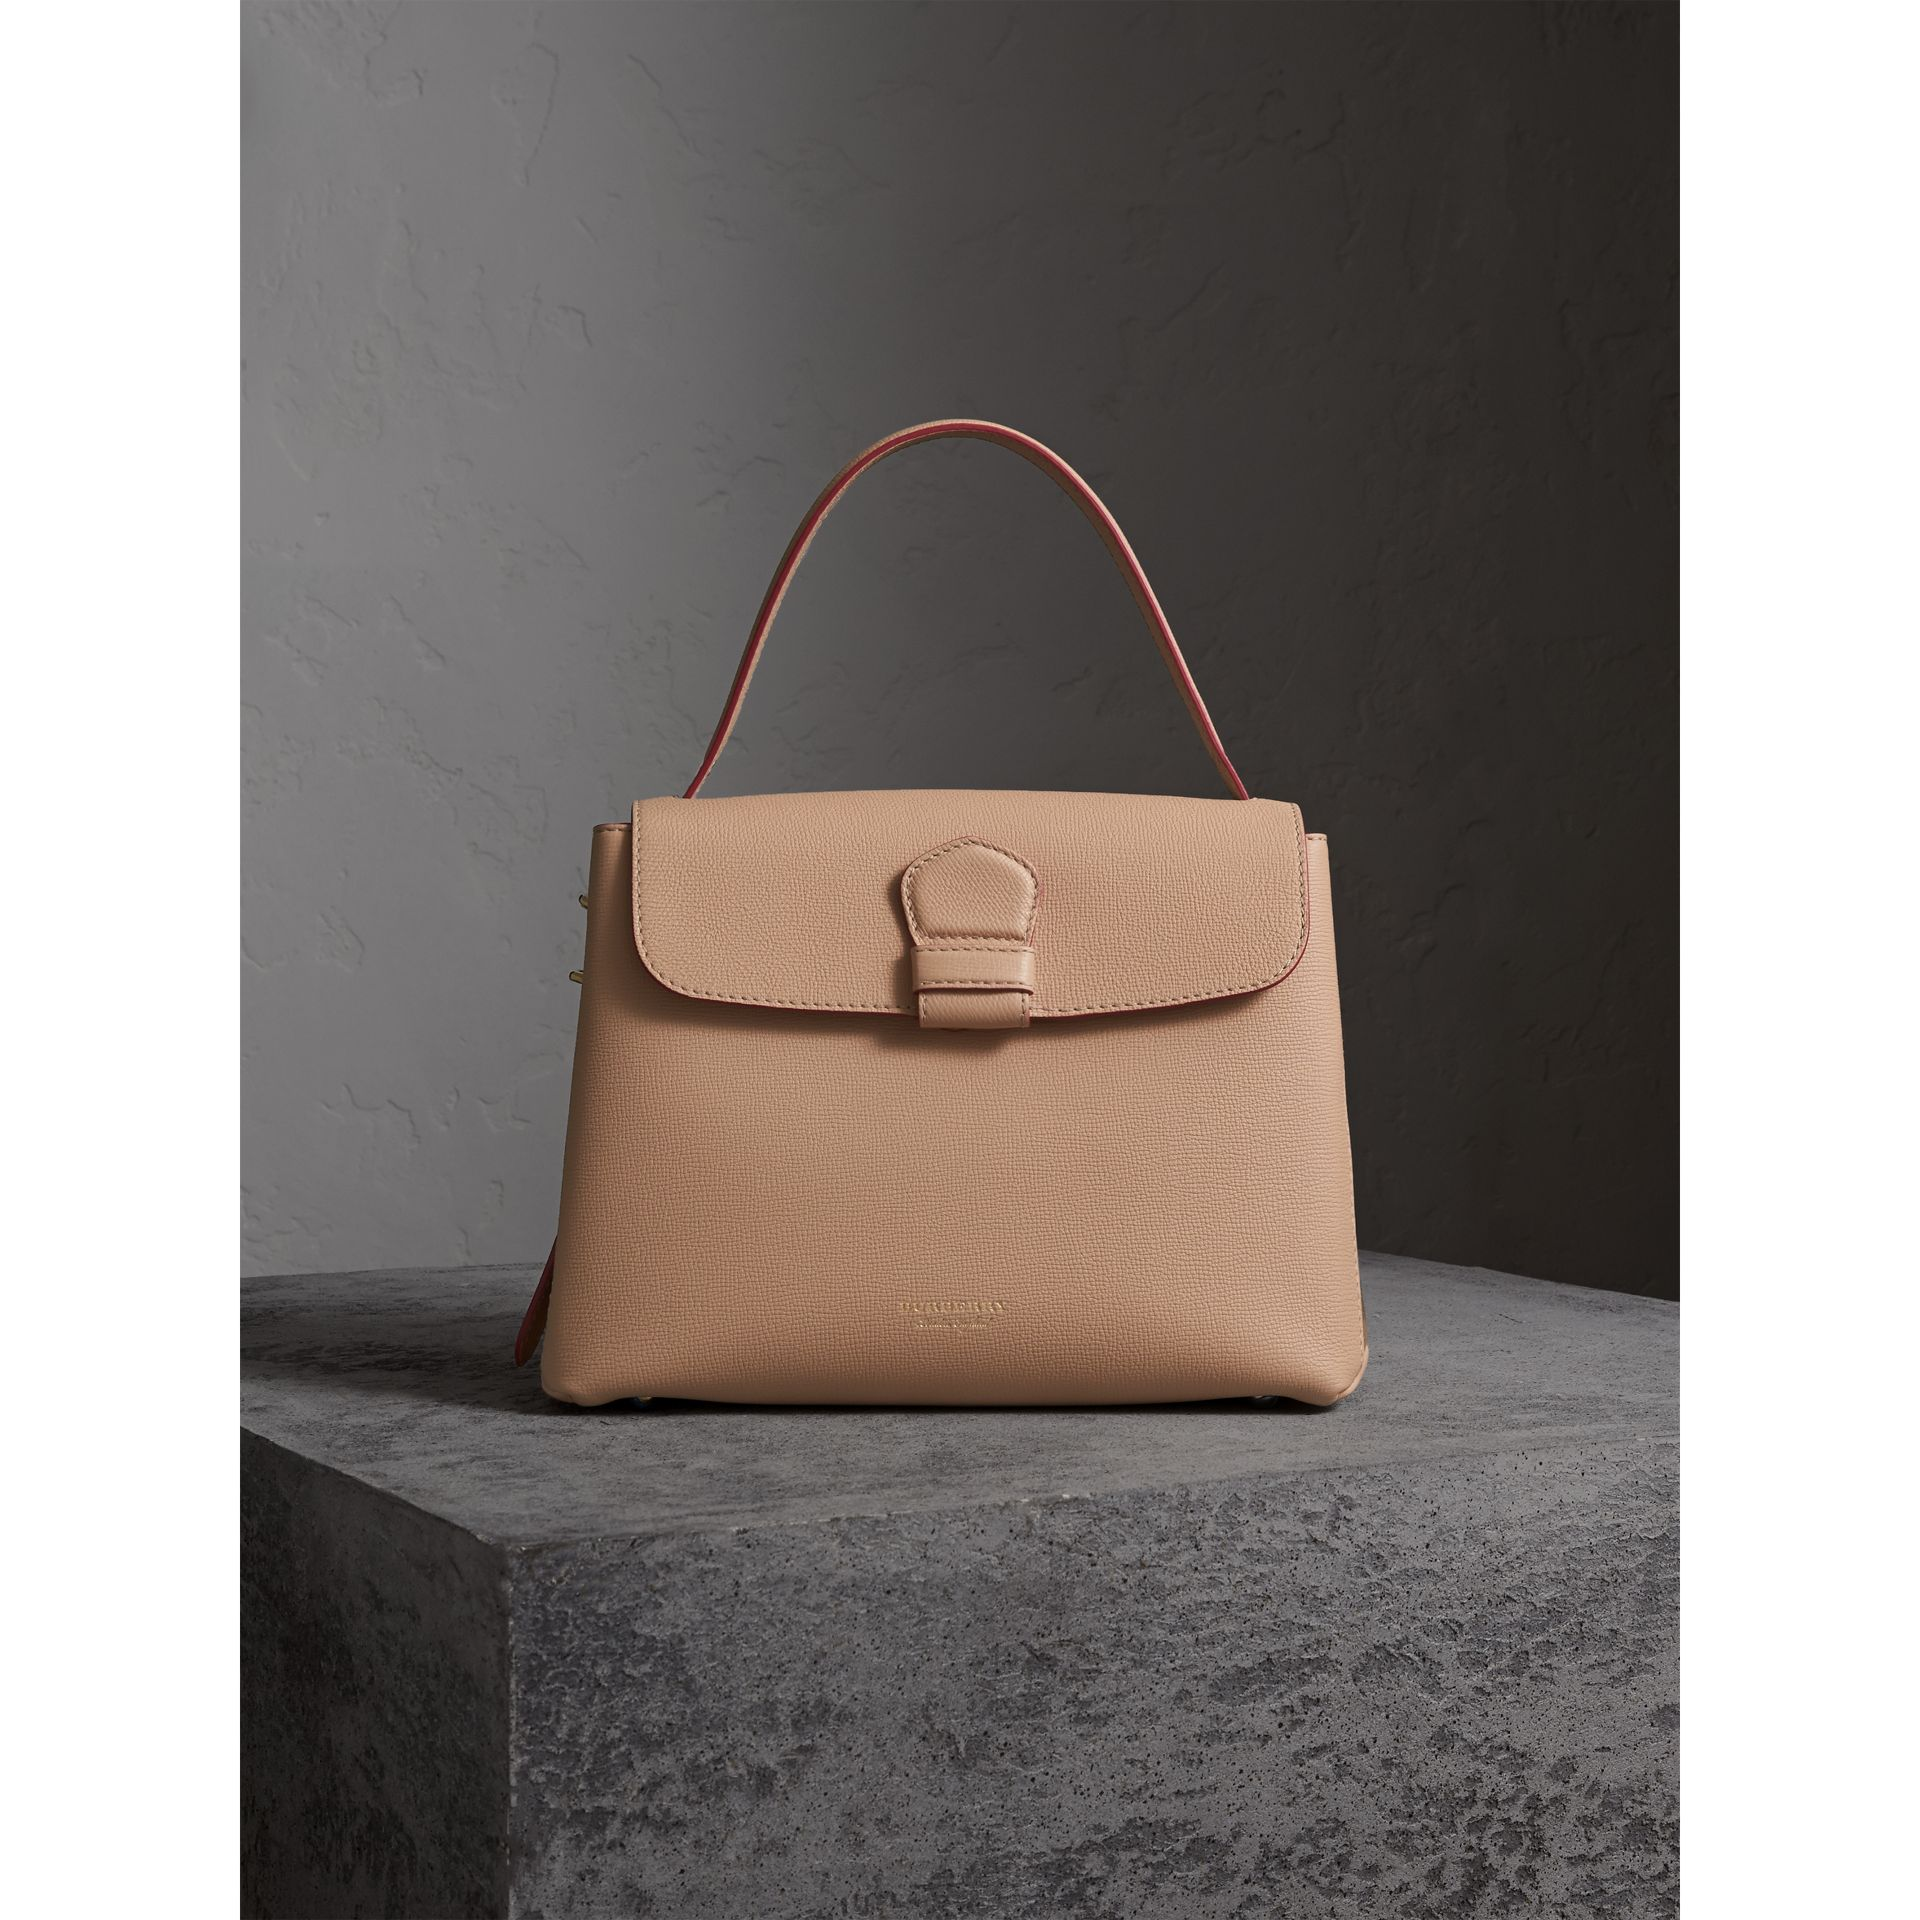 Medium Grainy Leather and House Check Tote Bag in Pale Apricot - Women | Burberry - gallery image 7